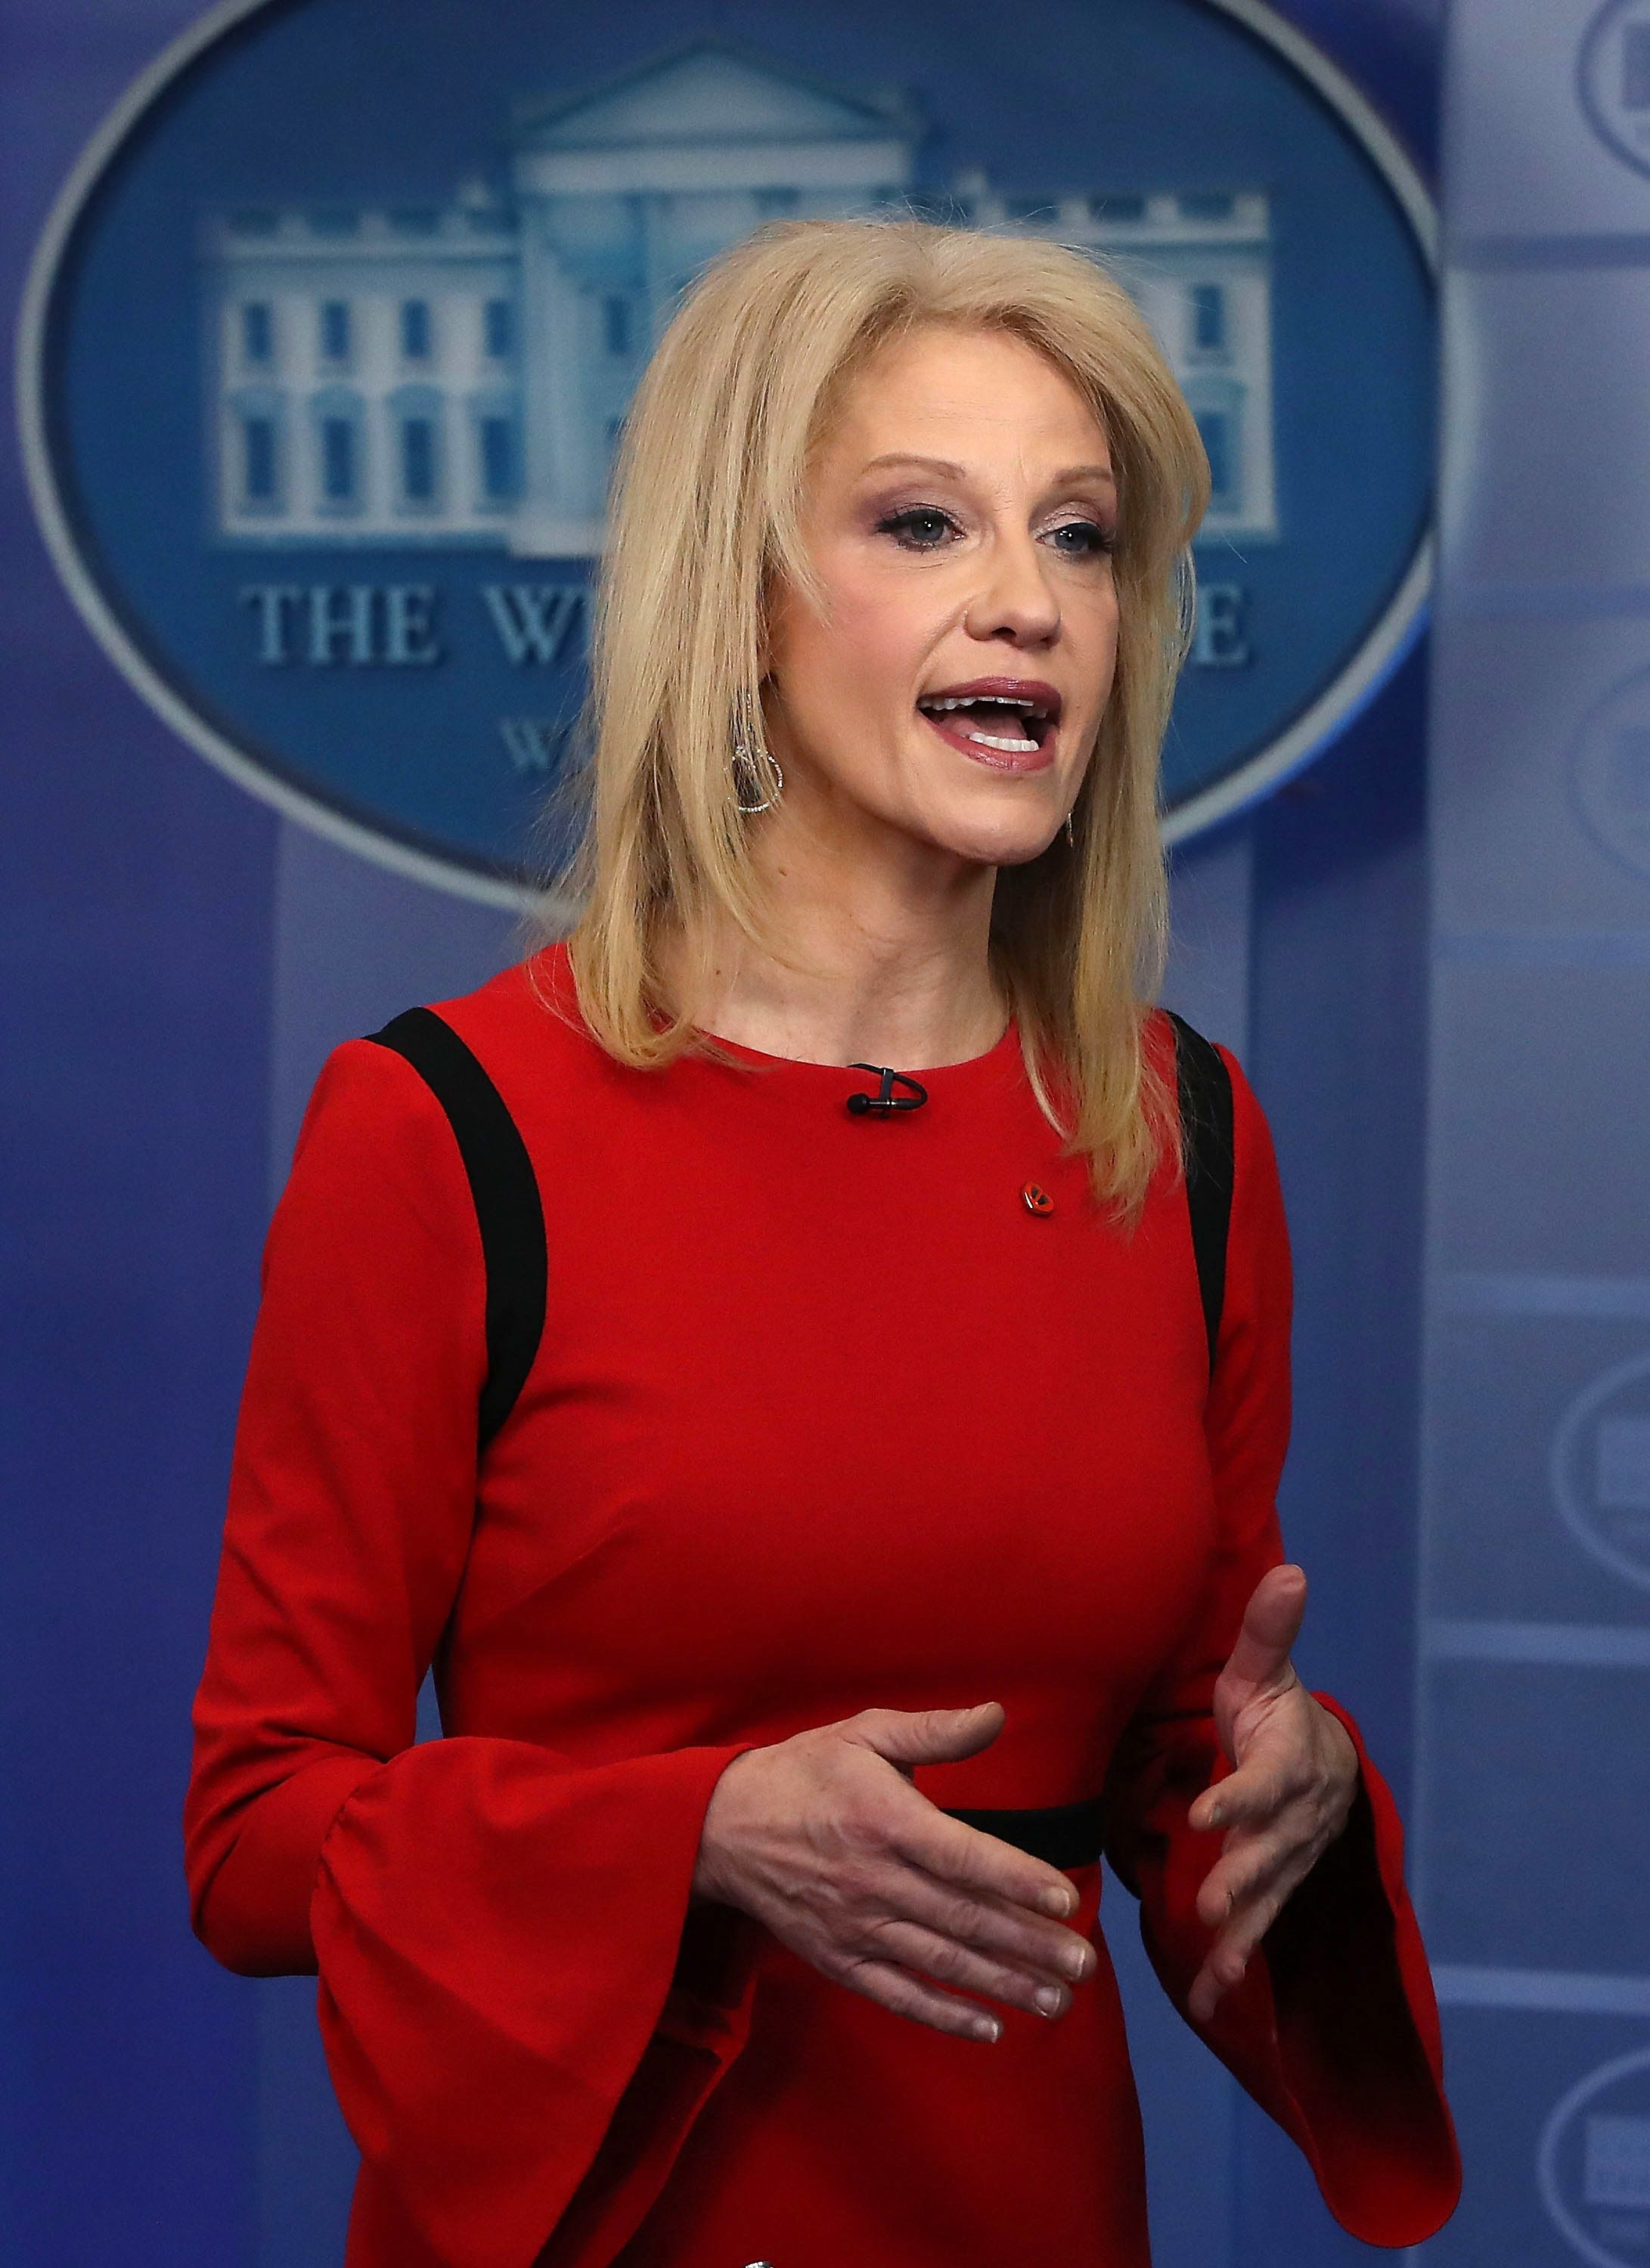 WASHINGTON, DC - MARCH 23: White House counselor Kellyanne Conway speaks during an interview with CNN, in the briefing Room at the White House on March 23, 2018 in Washington, DC.  (Photo by Mark Wilson/Getty Images)